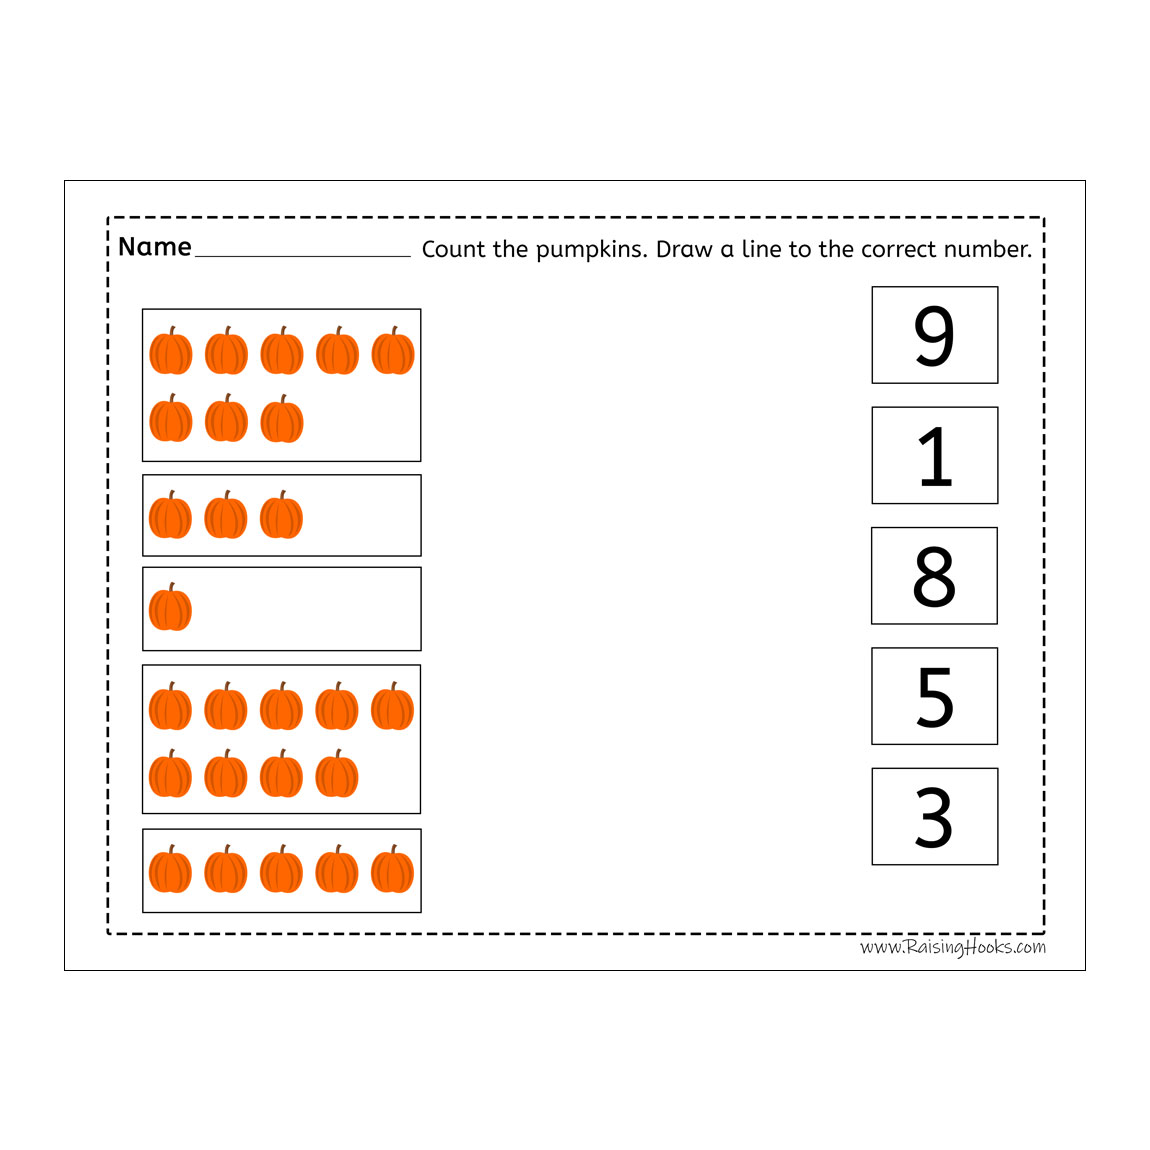 Counting Pumpkins Line To Number